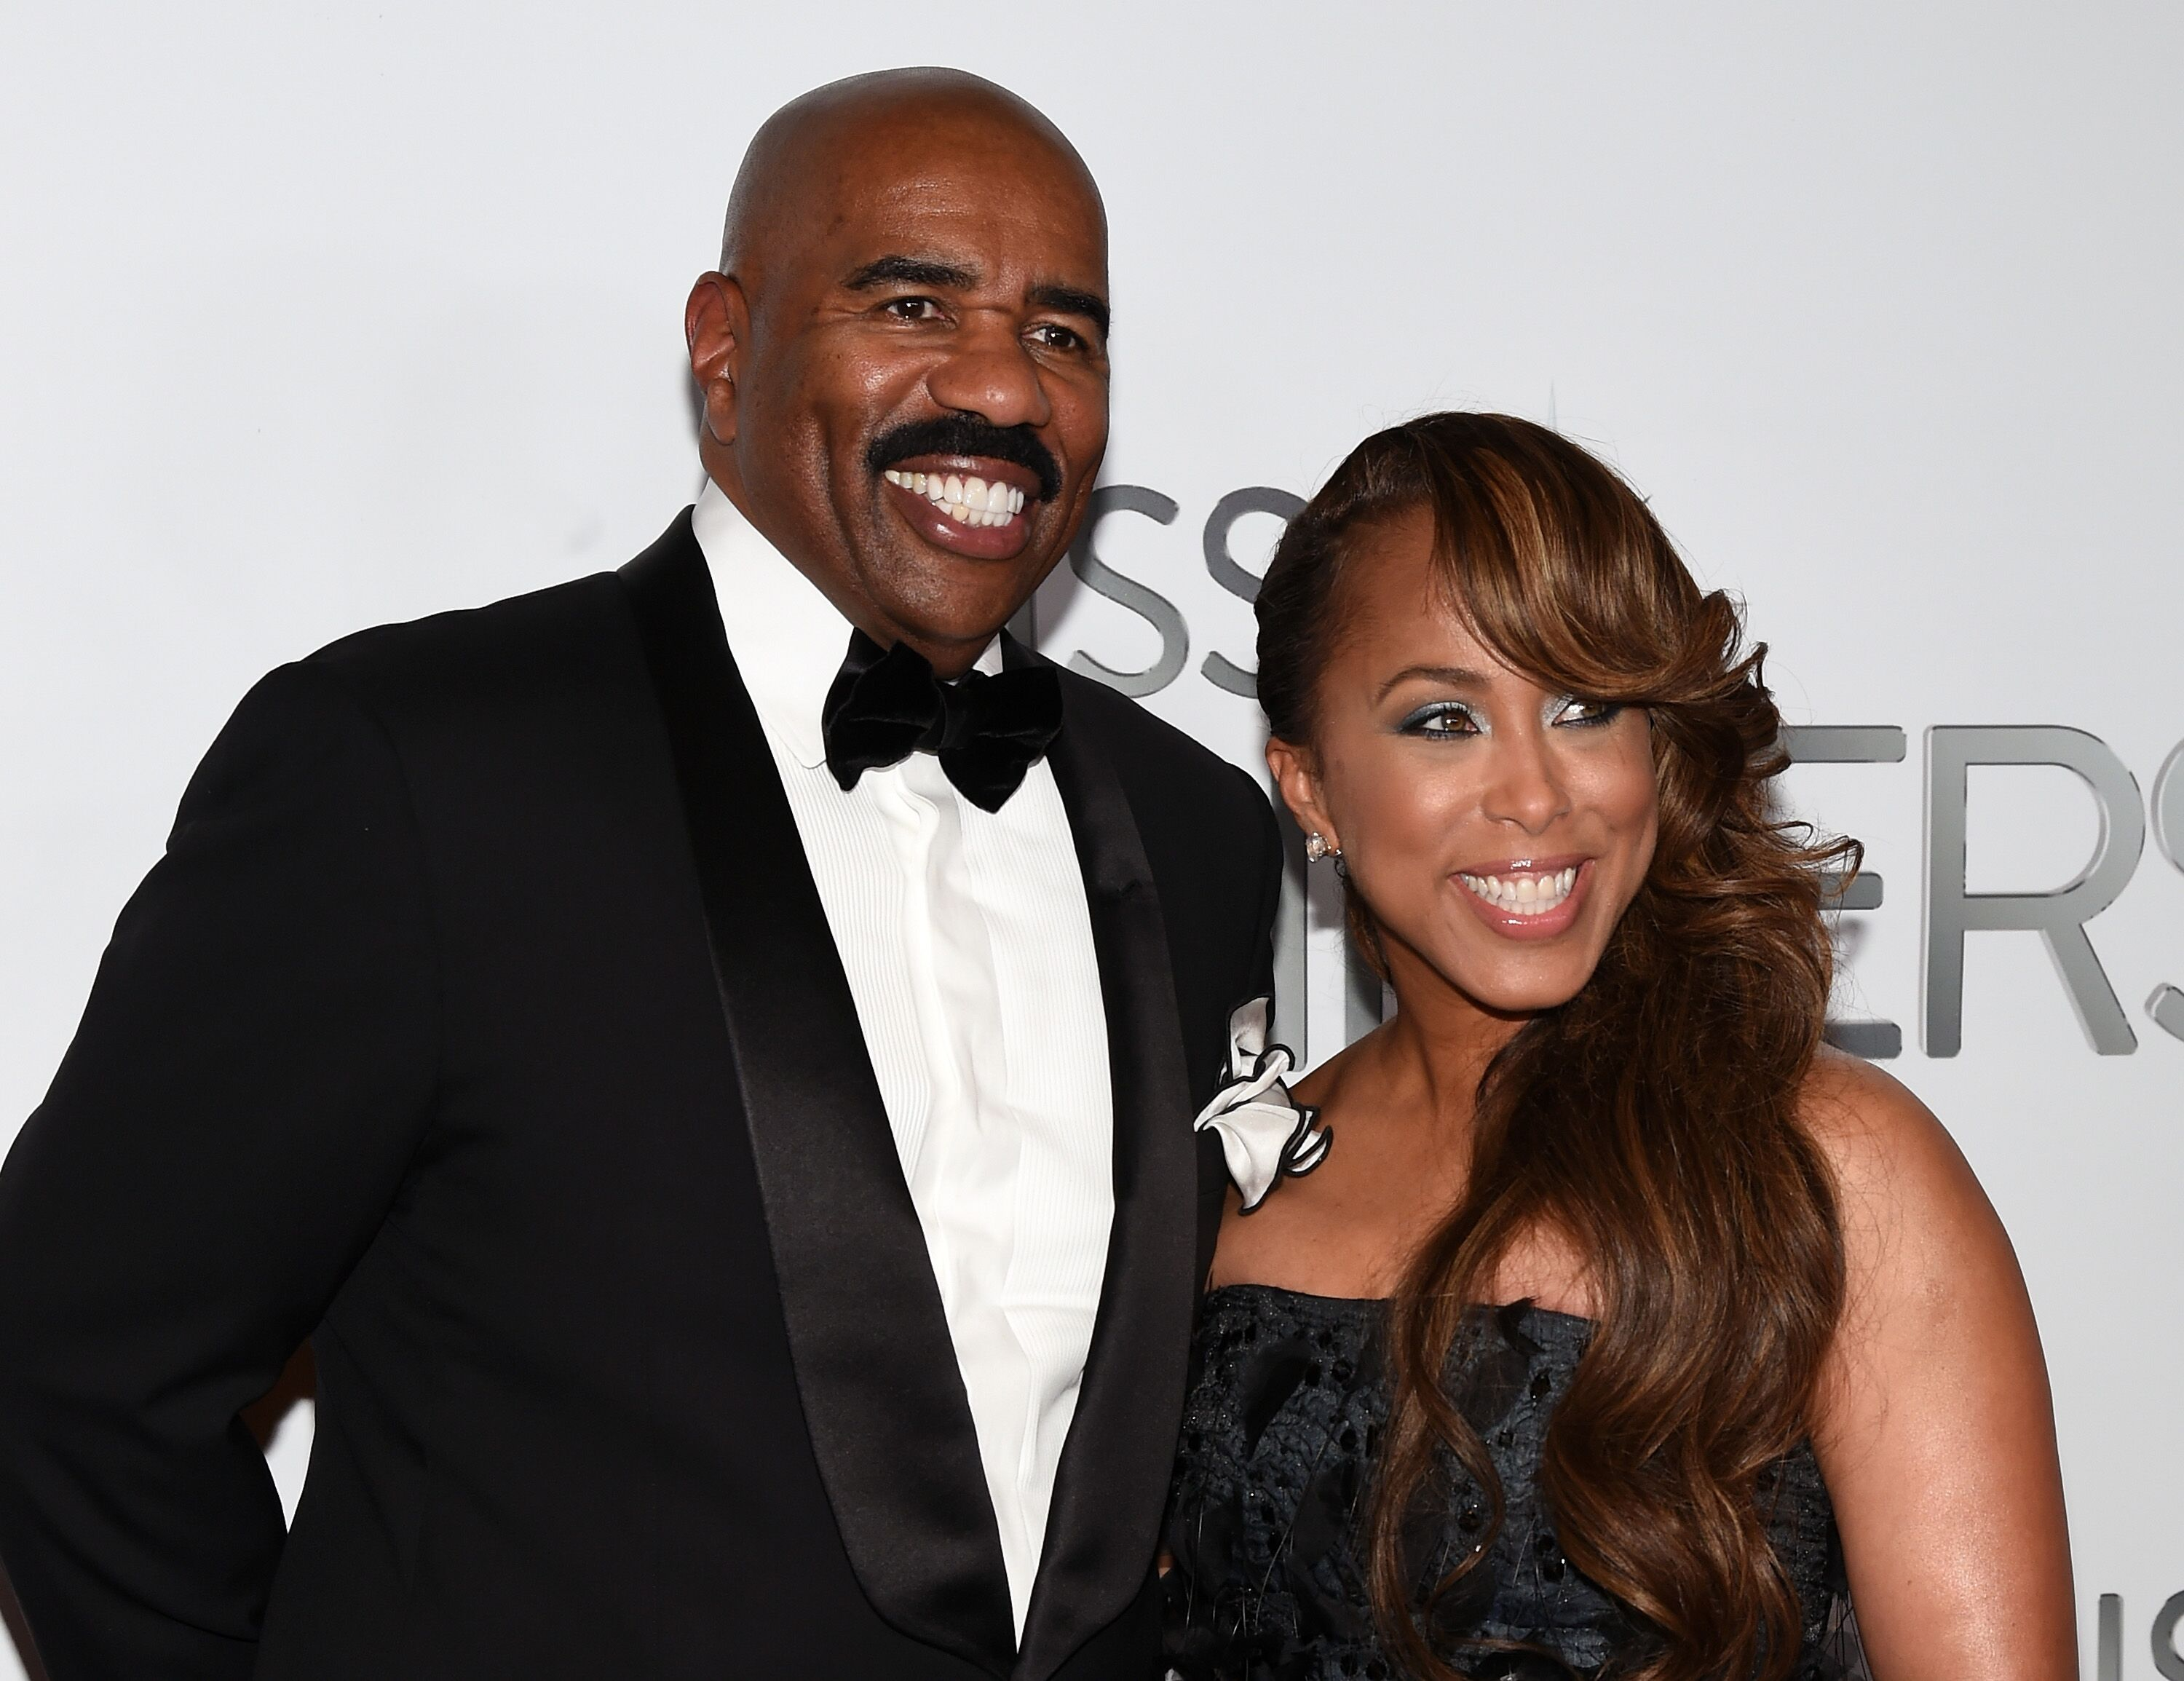 Lori Harvey's parents - stepfather Steve Harvey and mother Marjorie/ Source: Getty Images